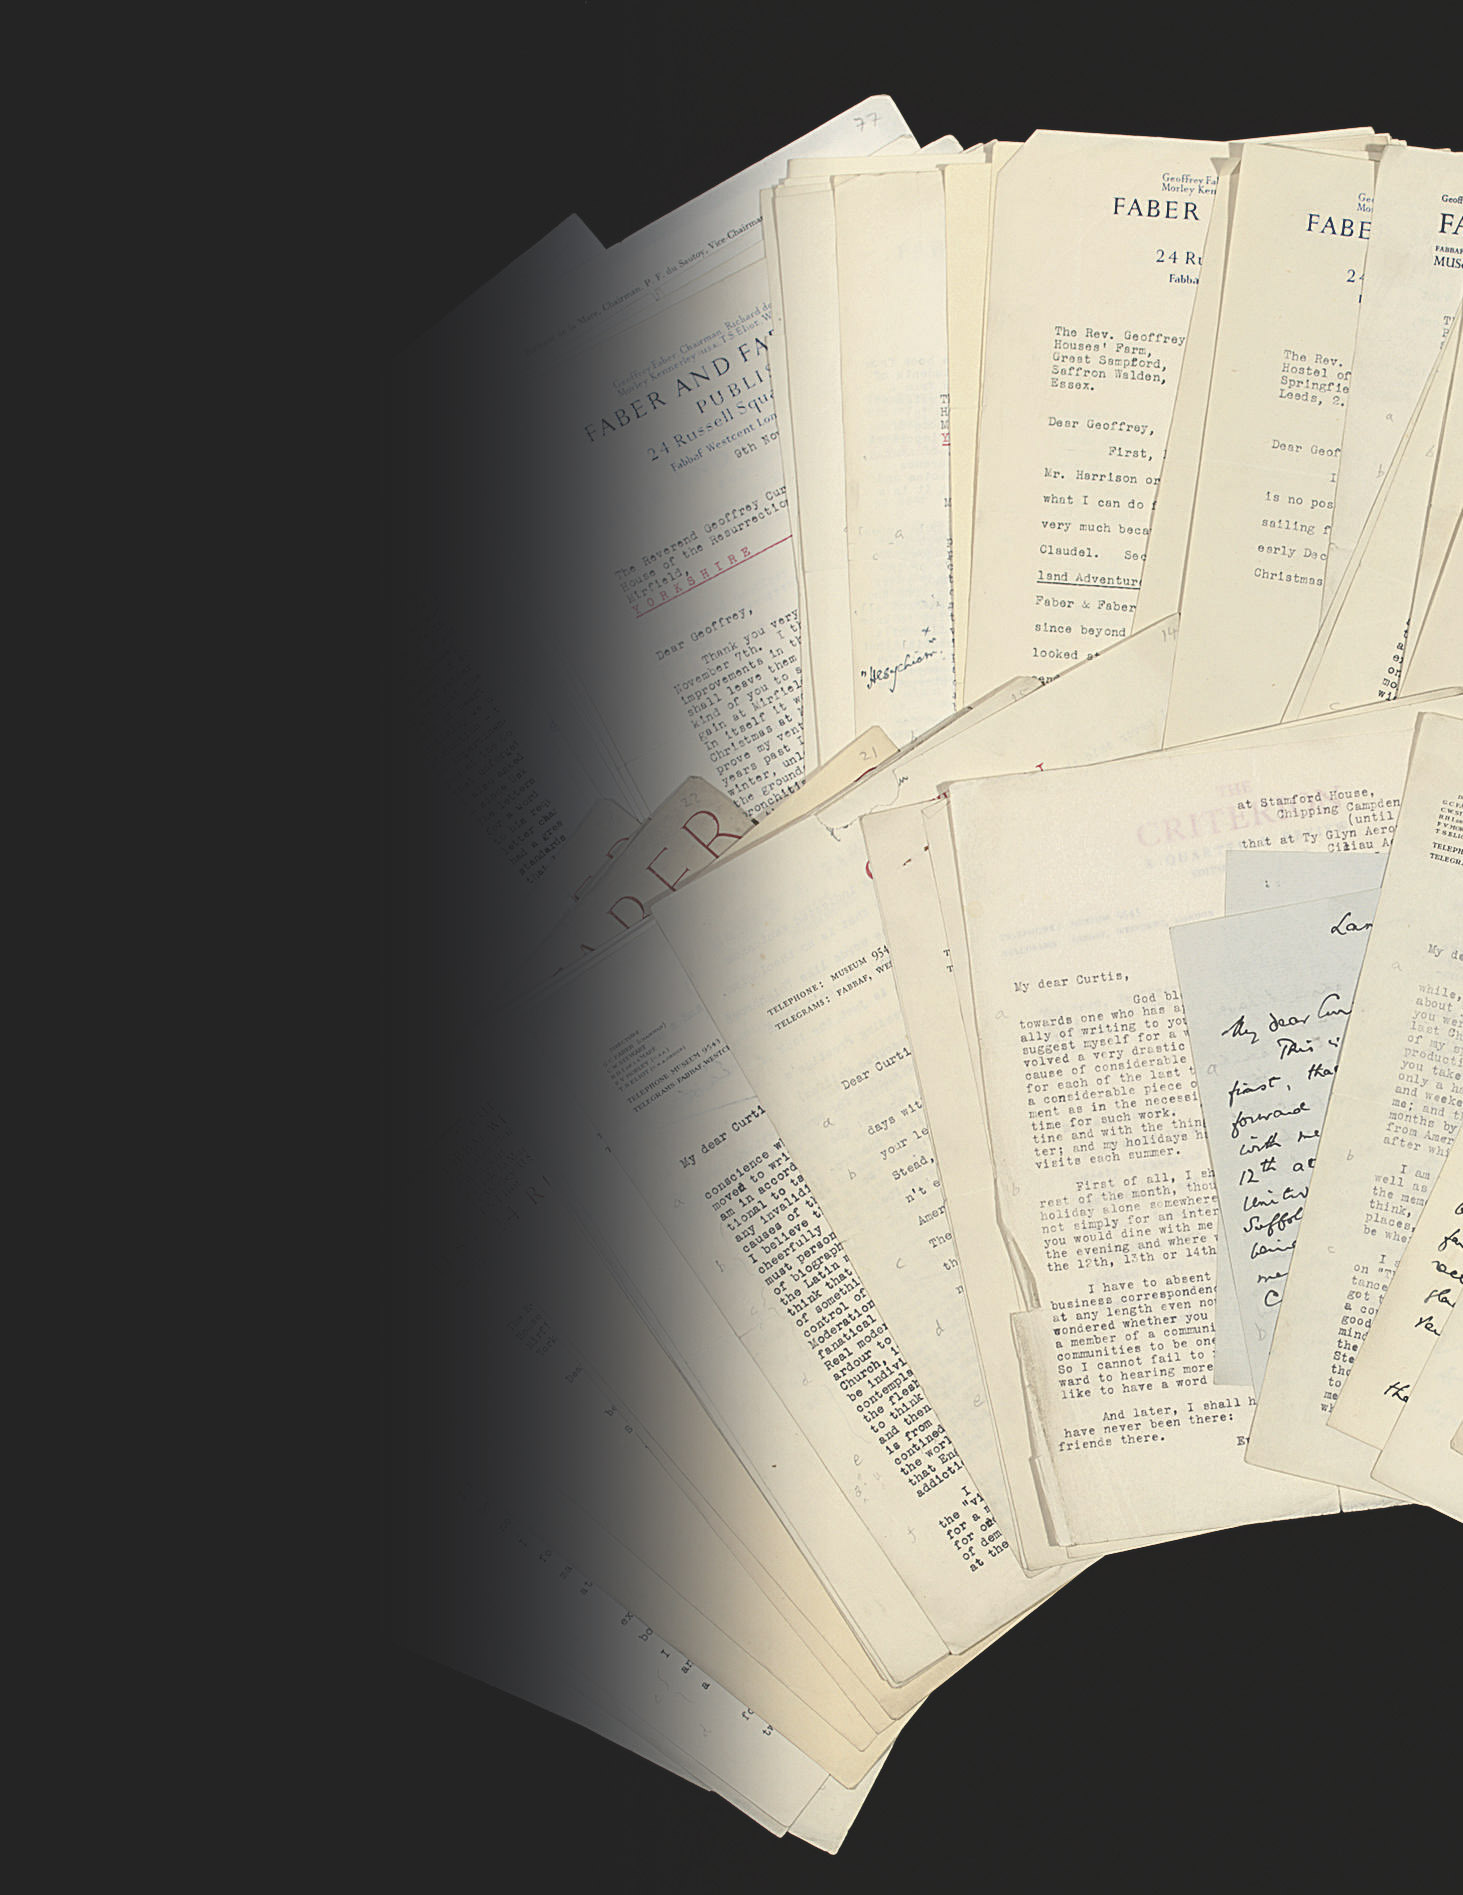 ELIOT, Thomas Stearns (1888-1965). Series of 74 typed letters signed and two autograph letters signed ('T.S. Eliot', 'T.S.E.', 'Tom') to Rev. Geoffrey Curtis, 24 Russell Square, occasionally Cambridge, Guildford, Cardiganshire and elsewhere, 17 June 1930 - 31 July 1964, one letter including an early carbon typescript draft of his poem 'The Cultivation of Christmas Trees' with one line added in autograph, approximately 92 pages, mostly 4to, typescript, and 5 pages, 8vo, in autograph; with 4 related letters and copies.